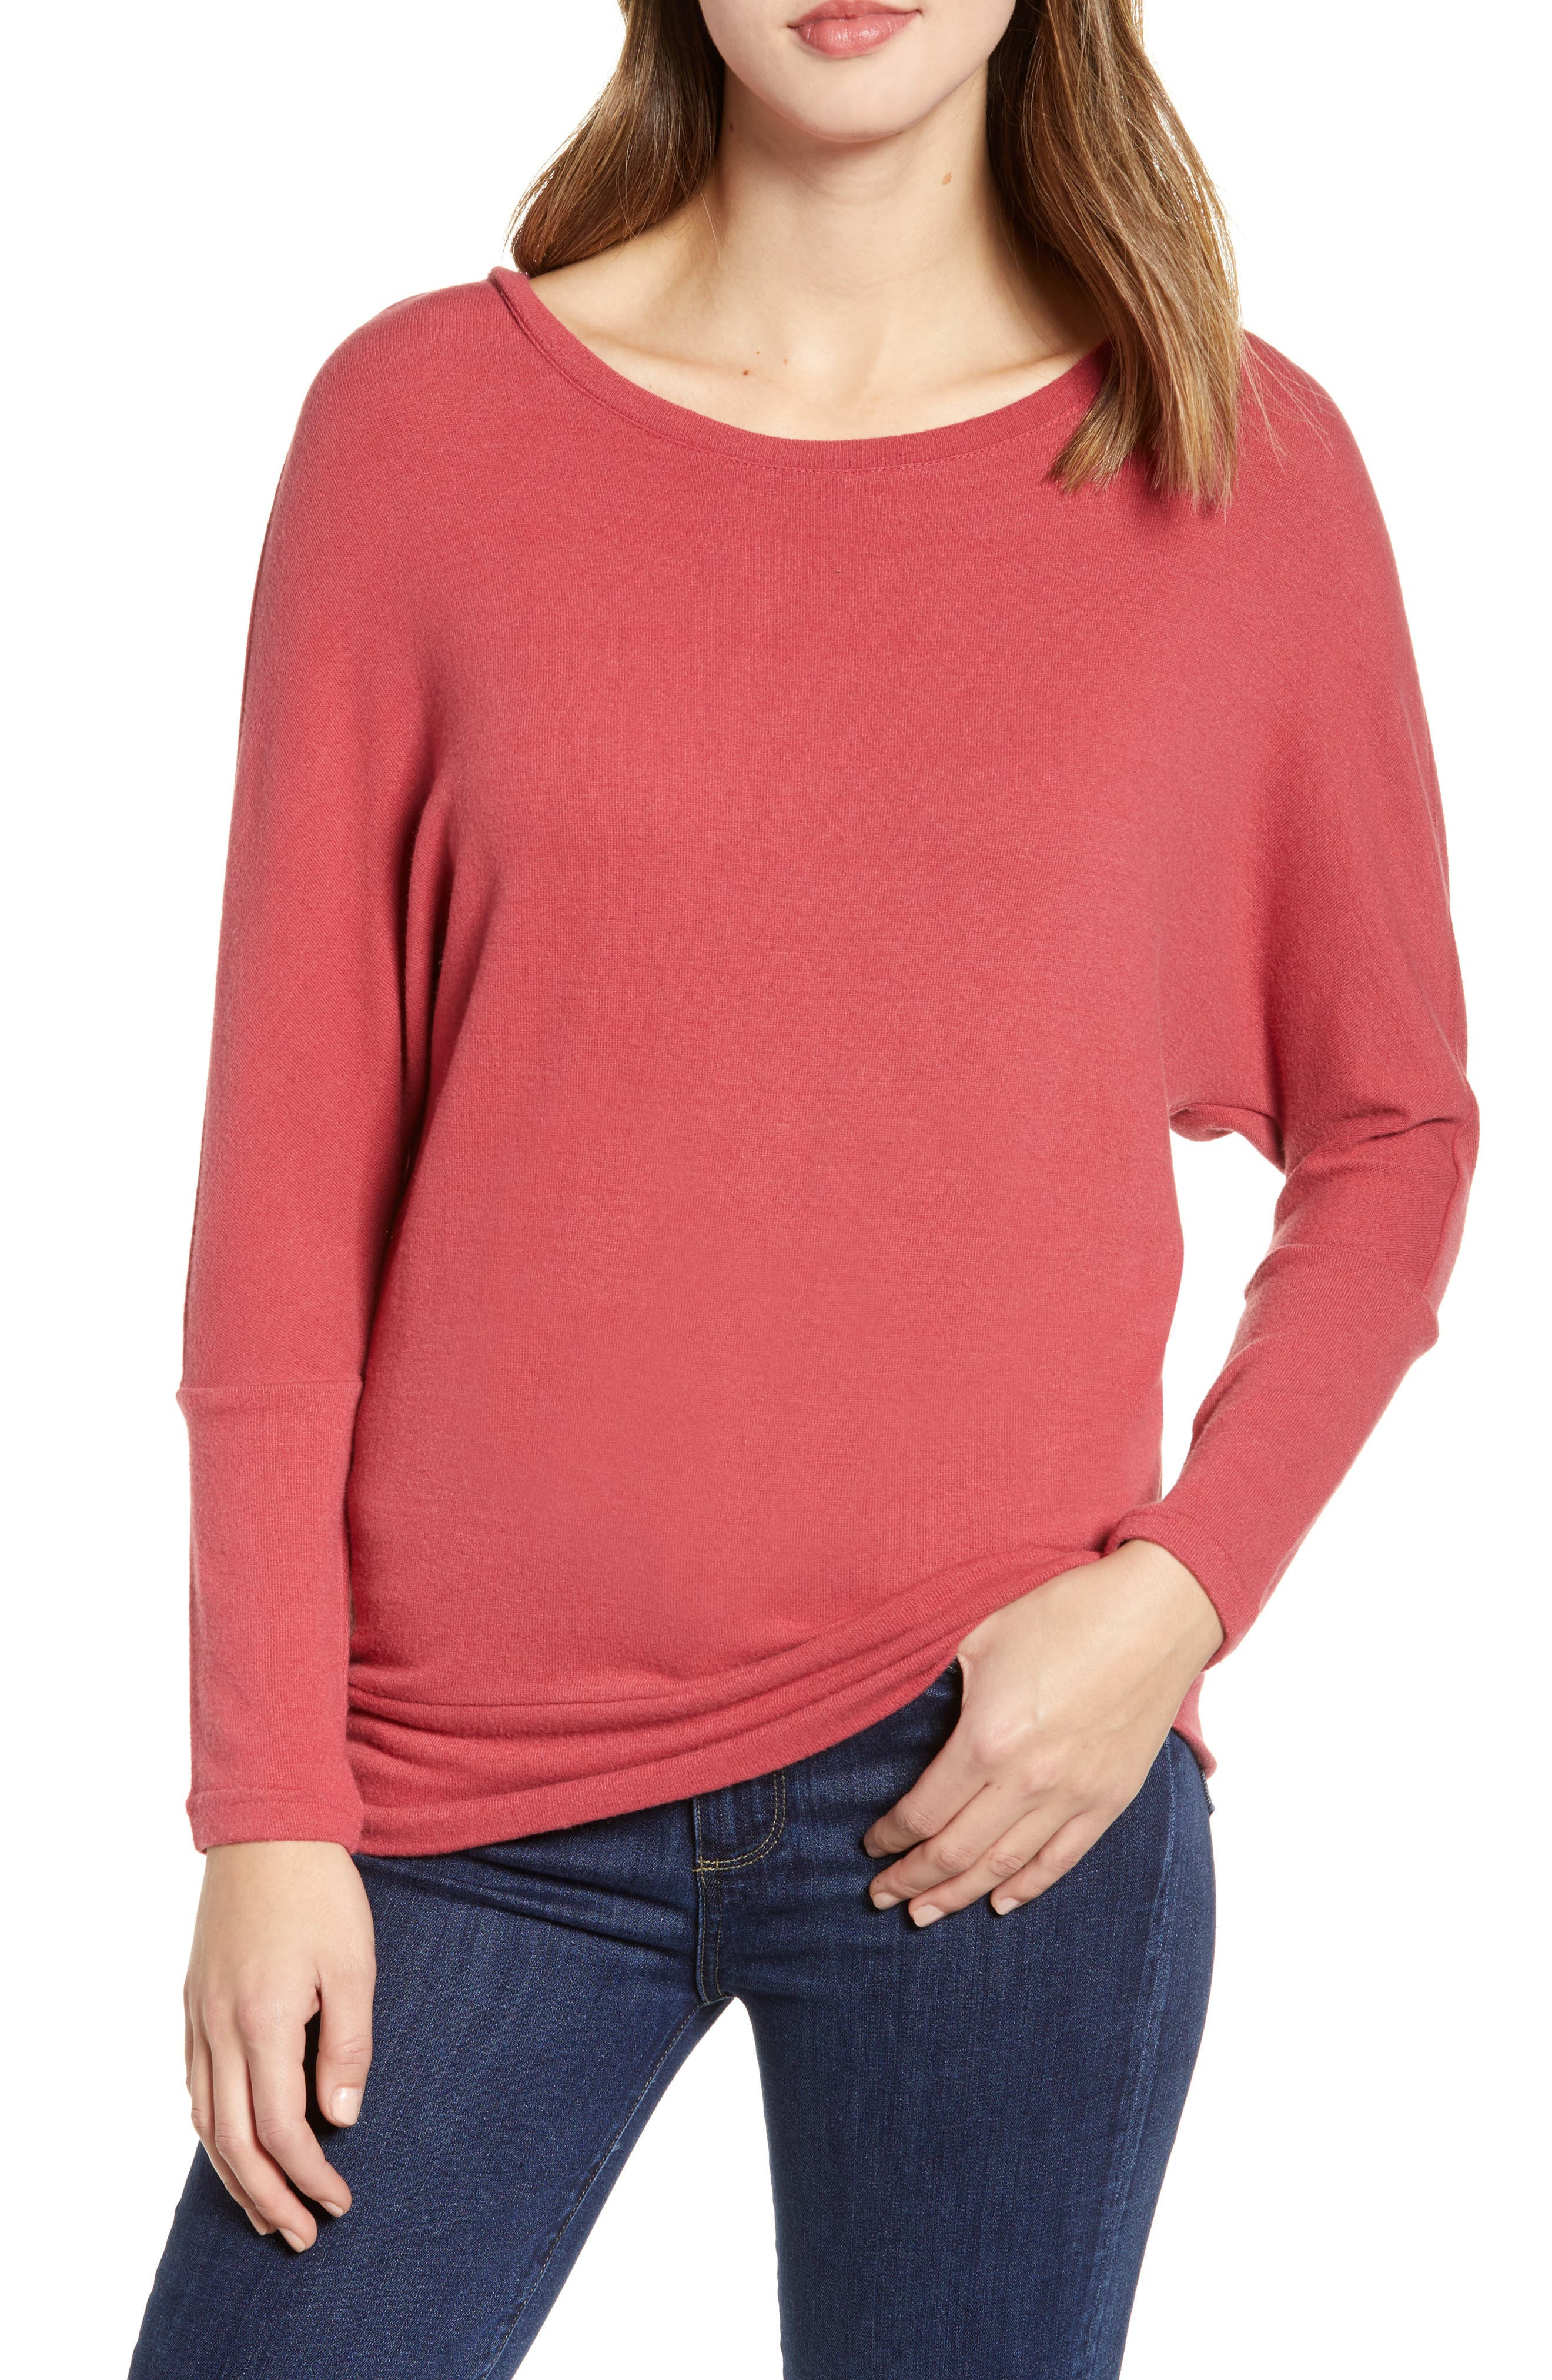 CUPCAKES AND CASHMERE Ivery Crewneck Long-Sleeve Sweatshirt in Earth Red